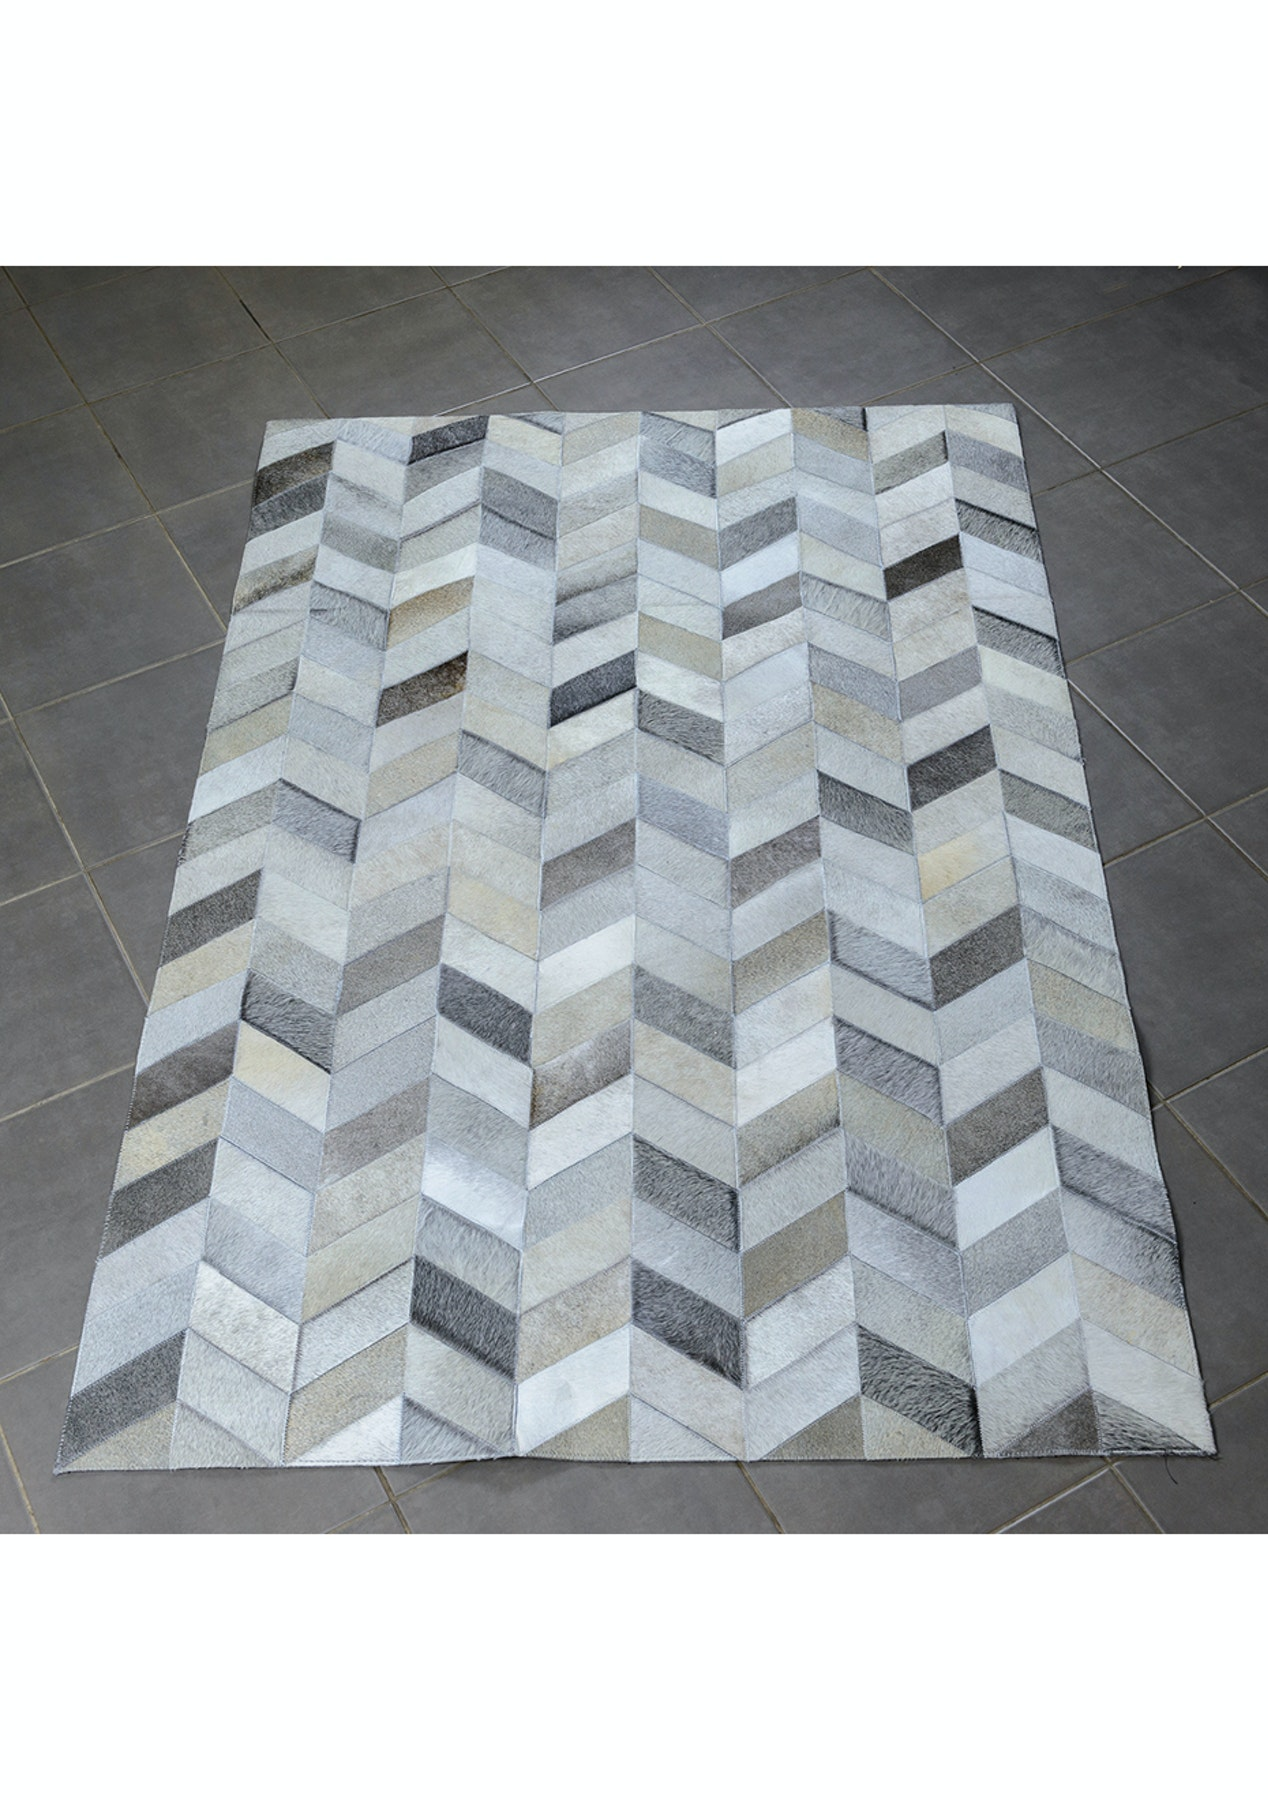 150x220 Cm Genuine Cow Hide Herringbone Patchwork Rug